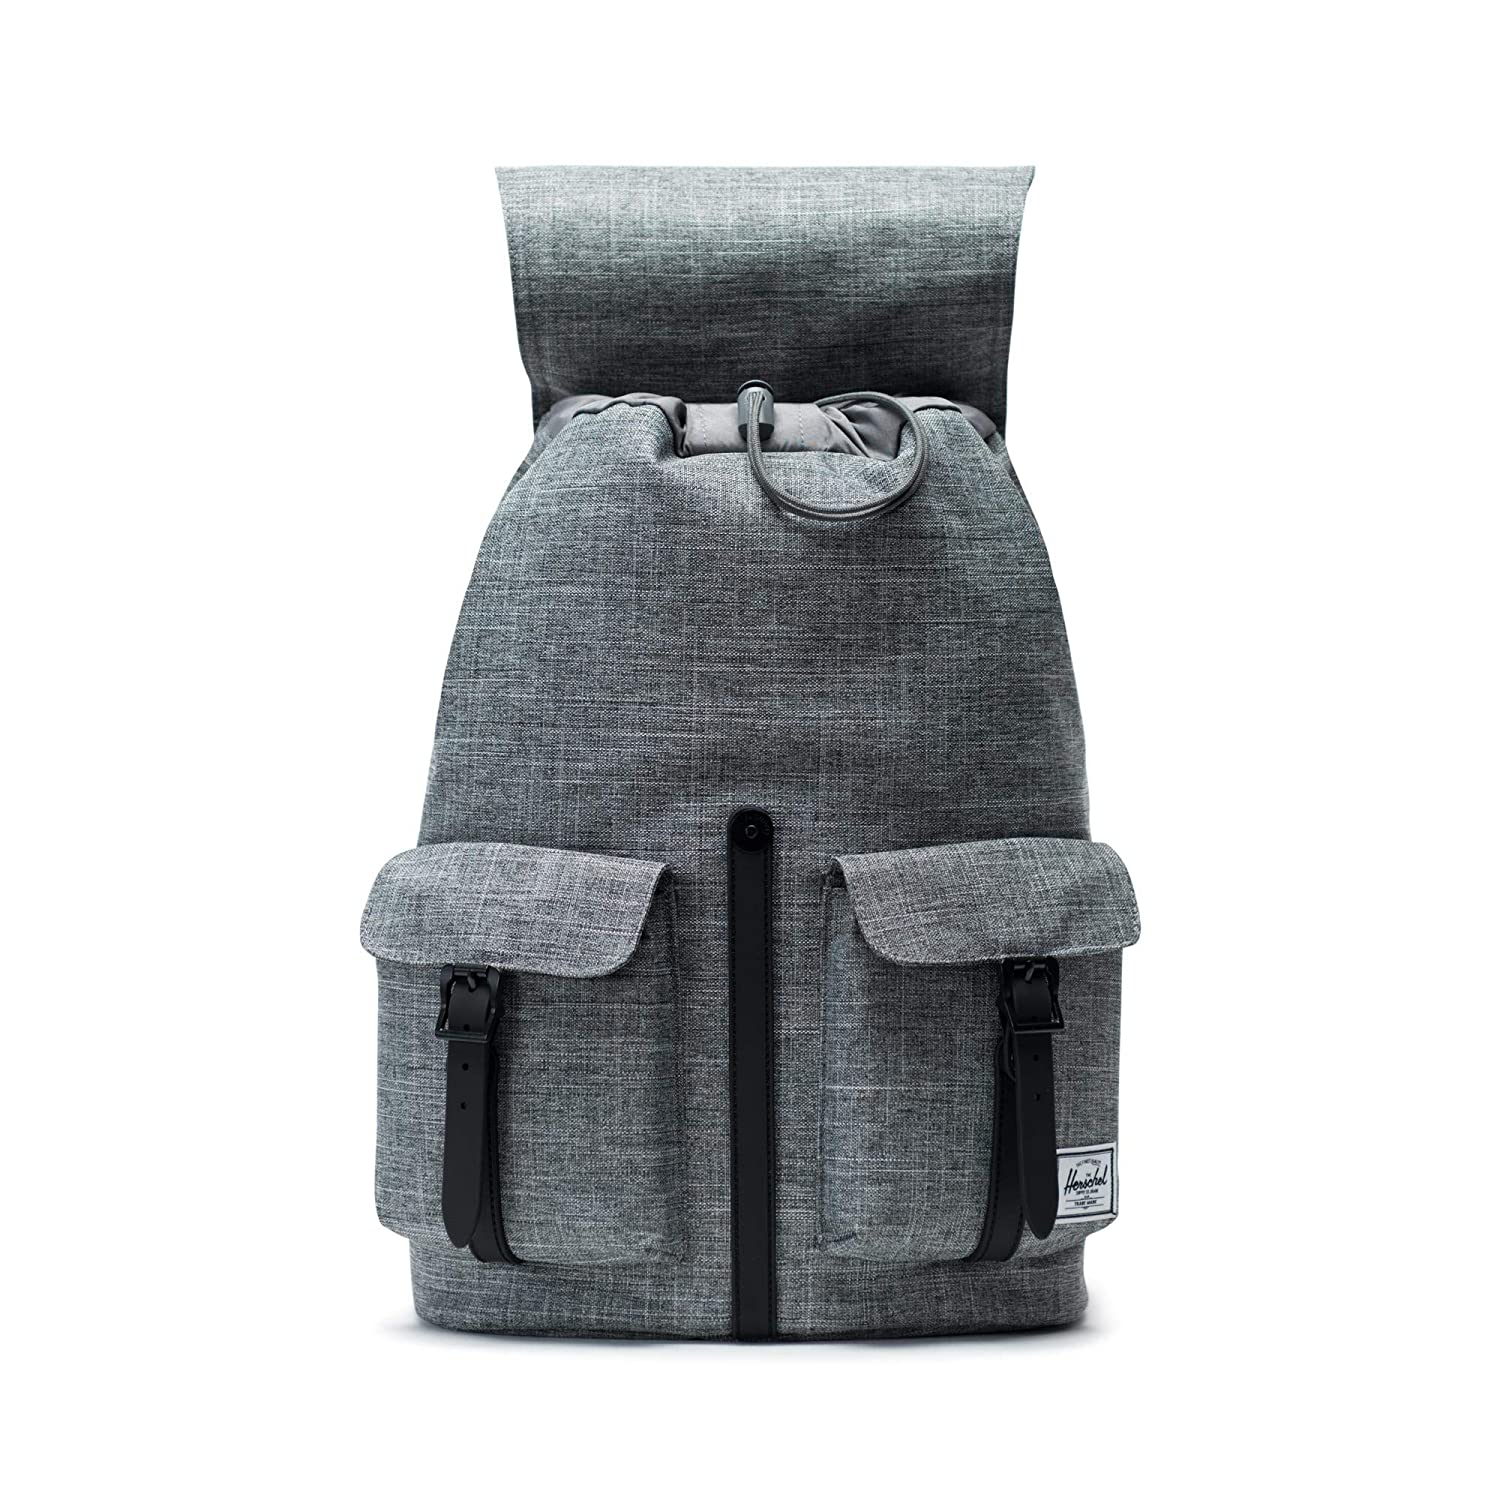 220c0dde2414 Herschel Supply Company SS16 Casual Daypack